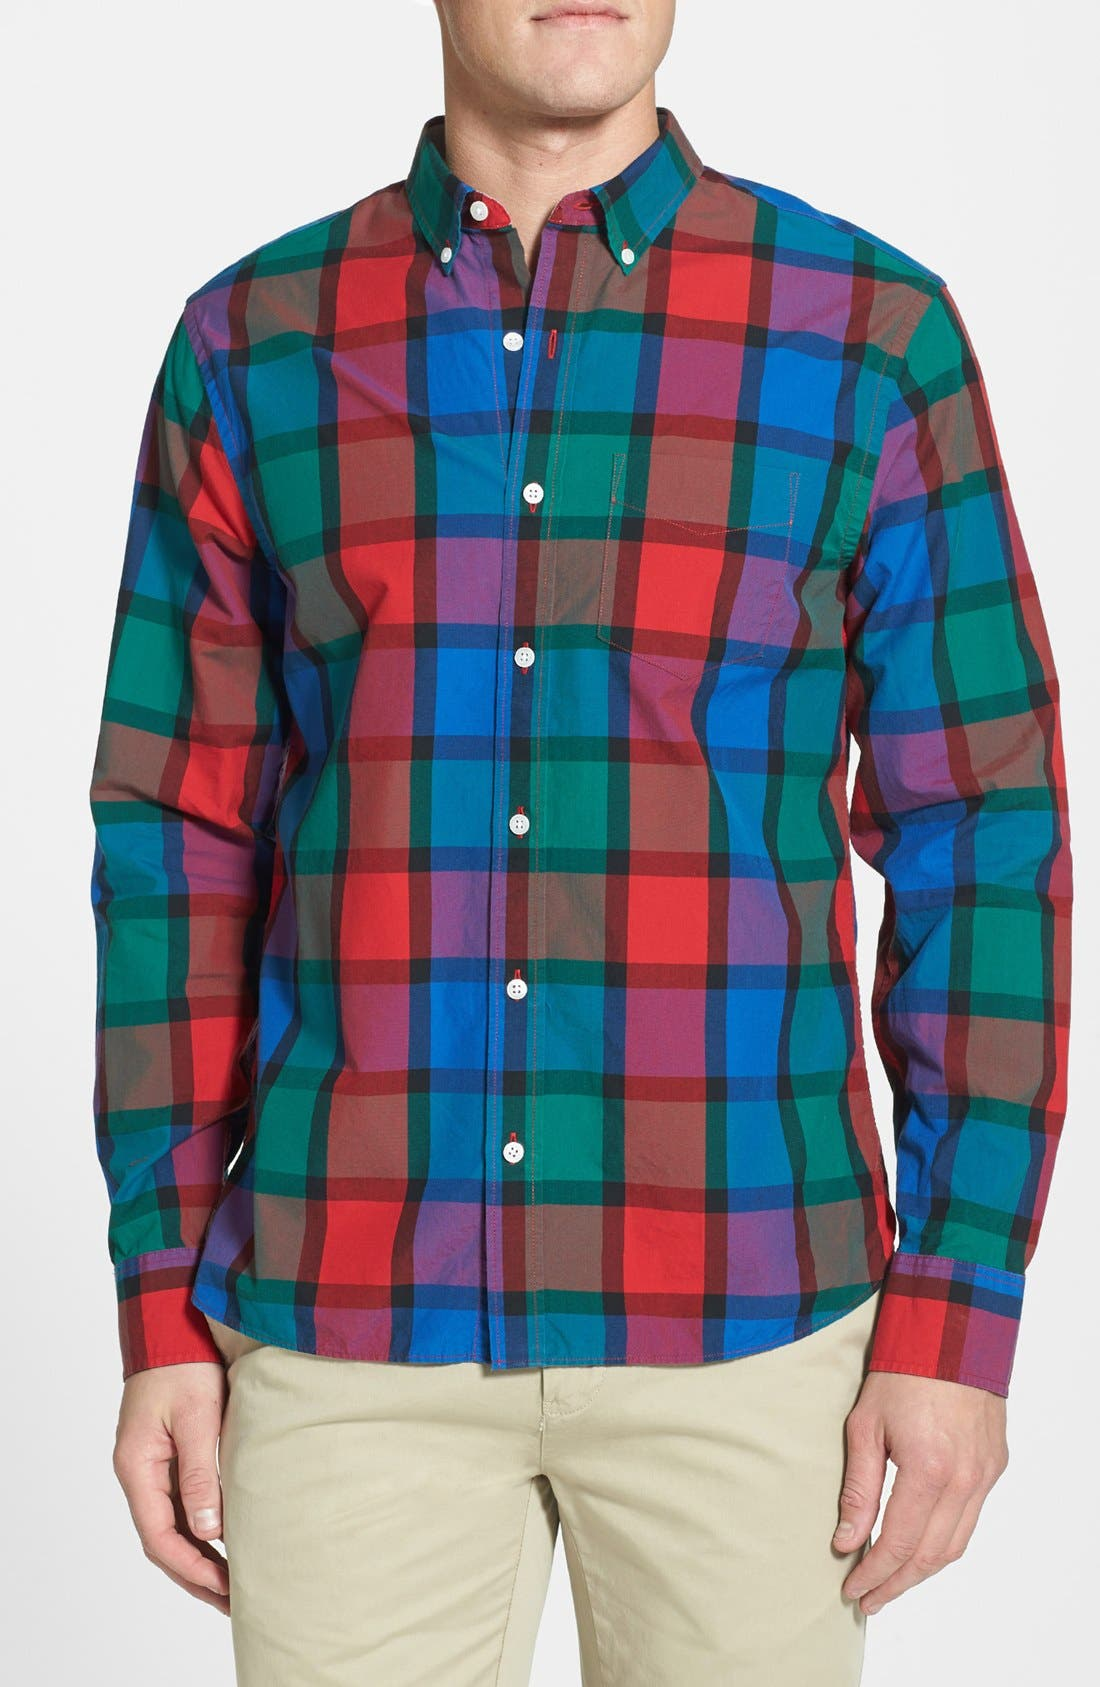 Alternate Image 1 Selected - Bonobos 'Hinsdale' Standard Fit Plaid Sport Shirt